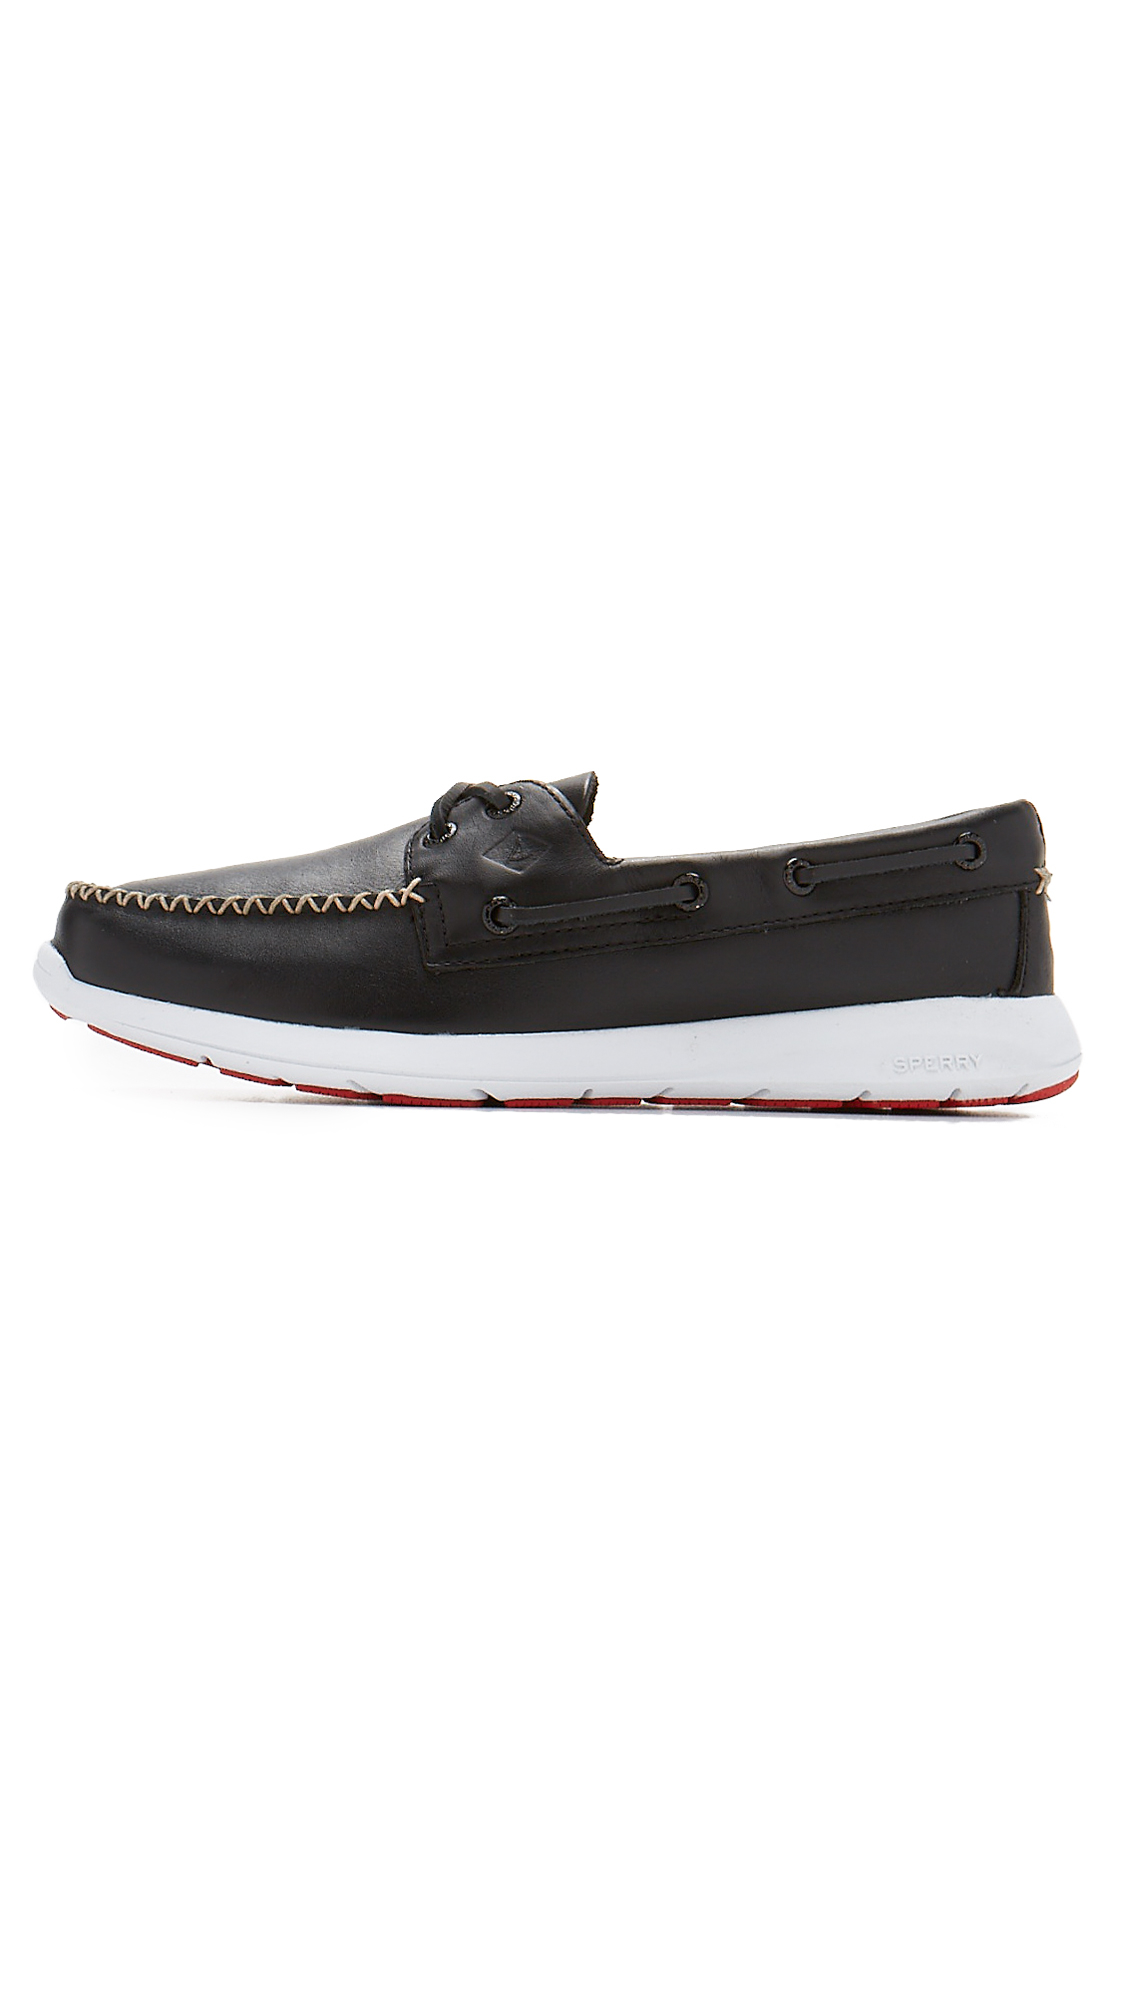 Sperry Top-Sider Paul Sojourn 2 Eye Leather Boat Shoes in Black for Men